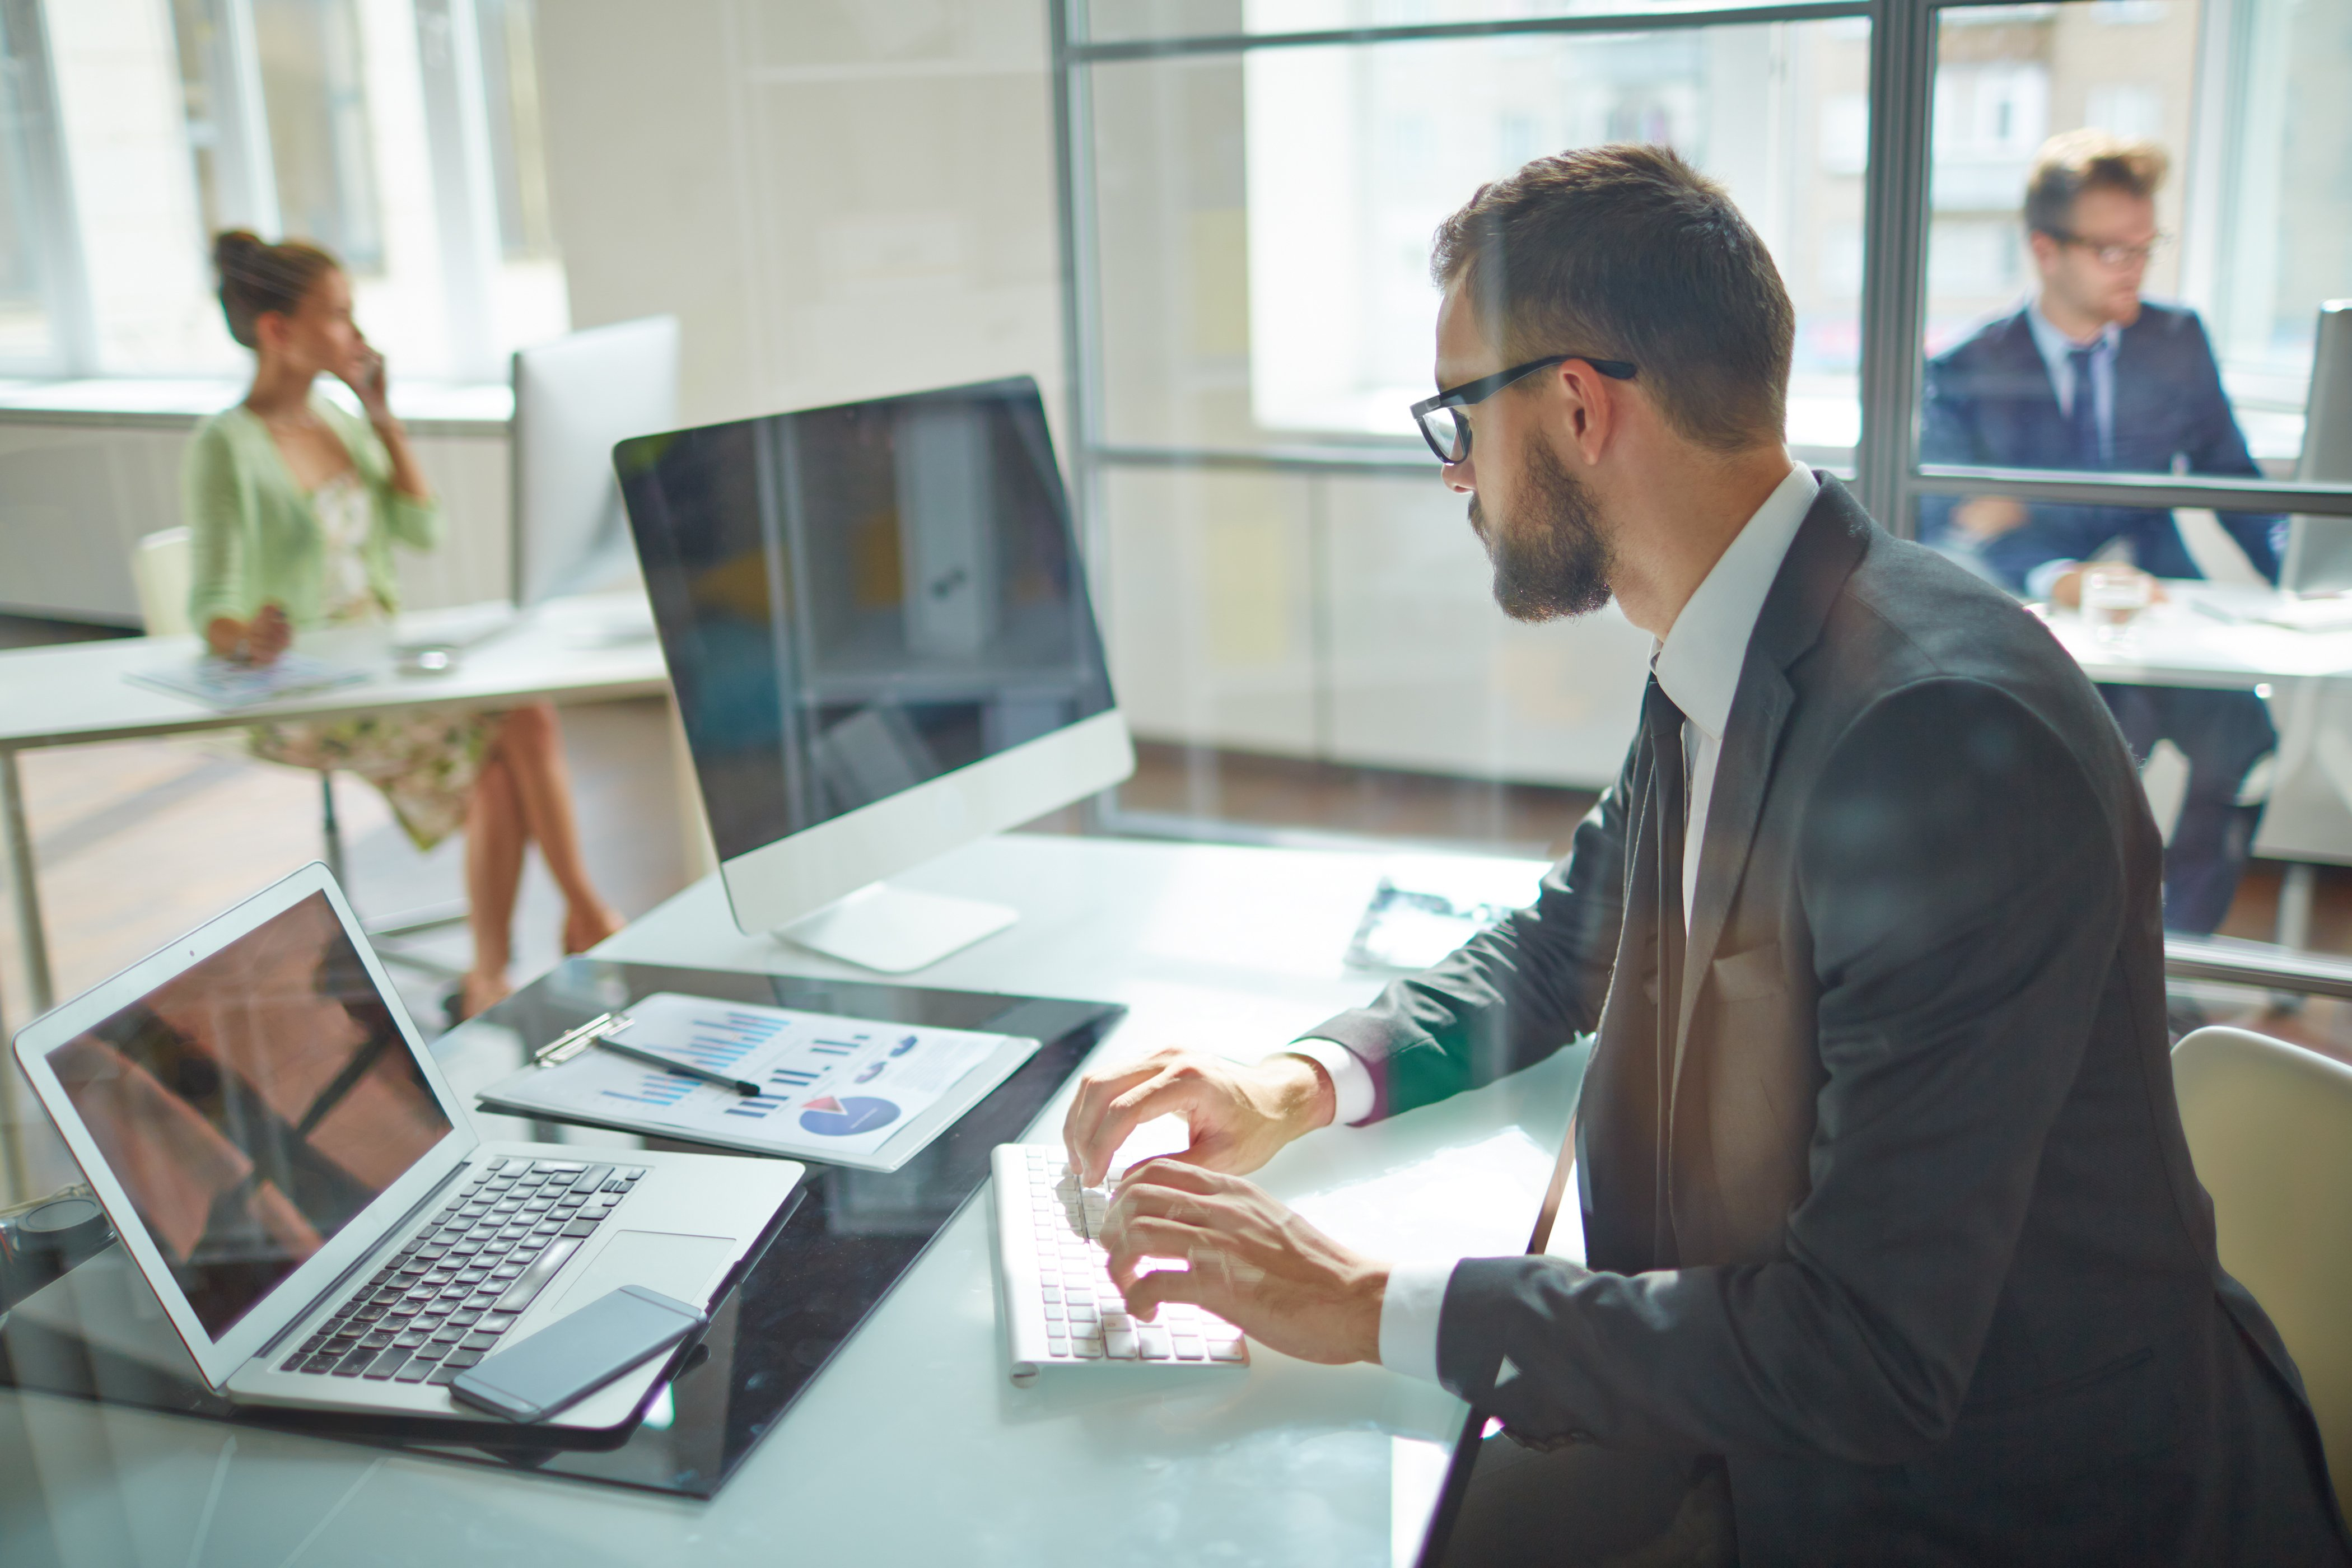 Man working at computer in office